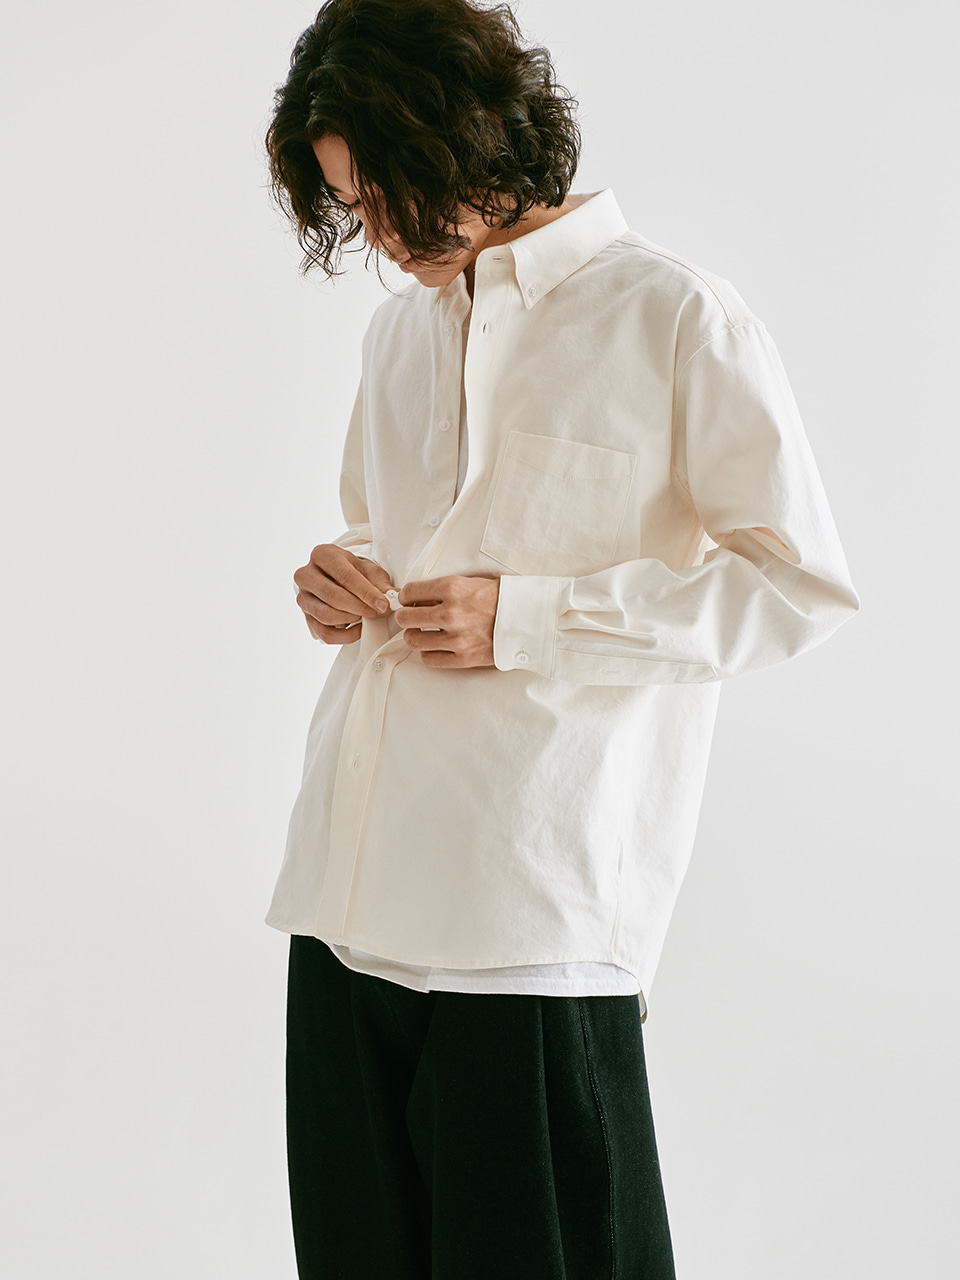 [FW20 Sounds Life] Soft Button-down Shirt(White) STEREO-SHOP